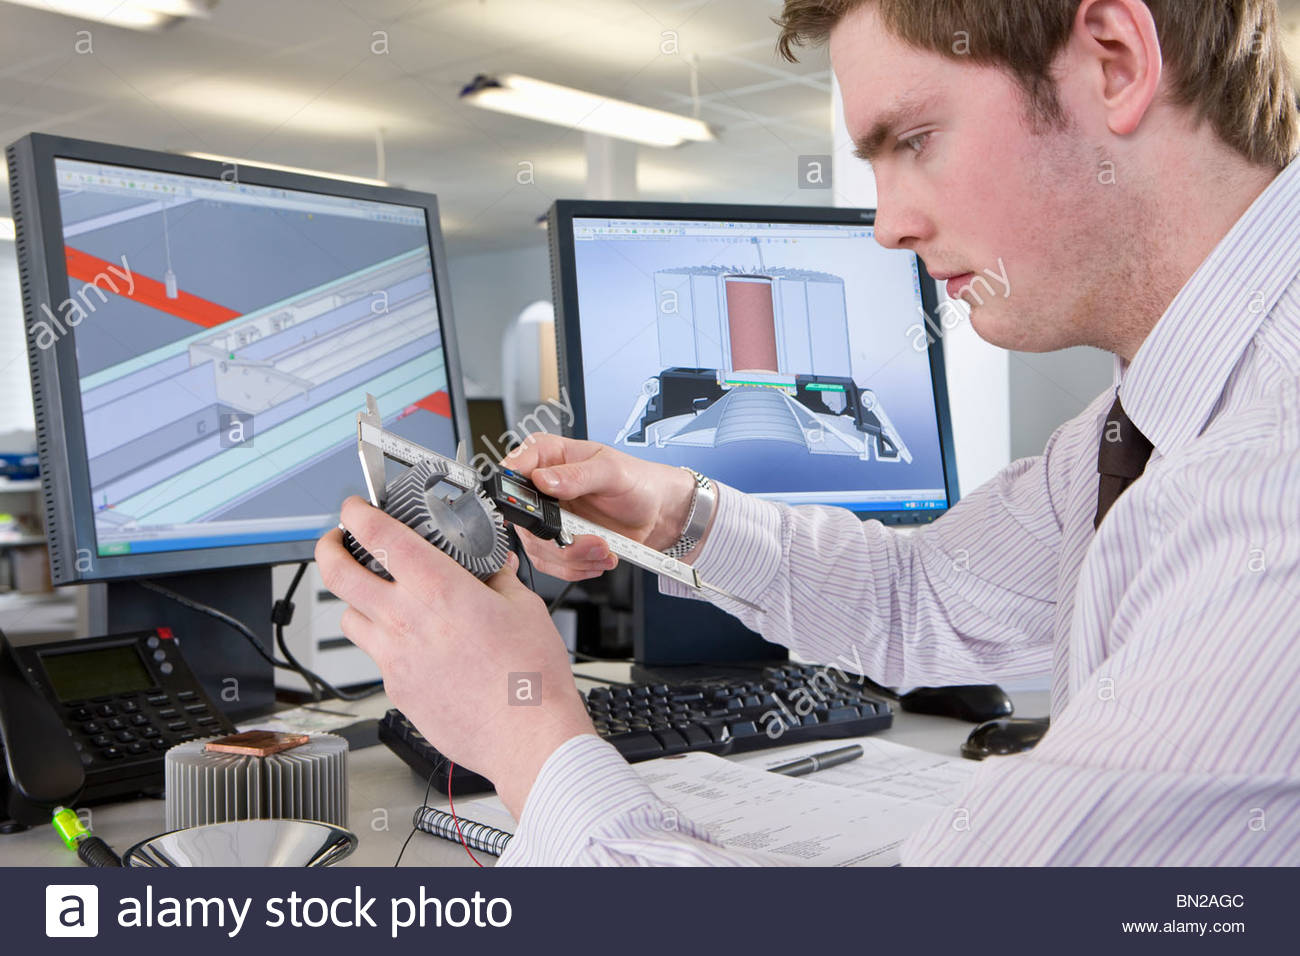 Cad Designer Measuring Part At Desk In Office Stock Photo, Royalty ...